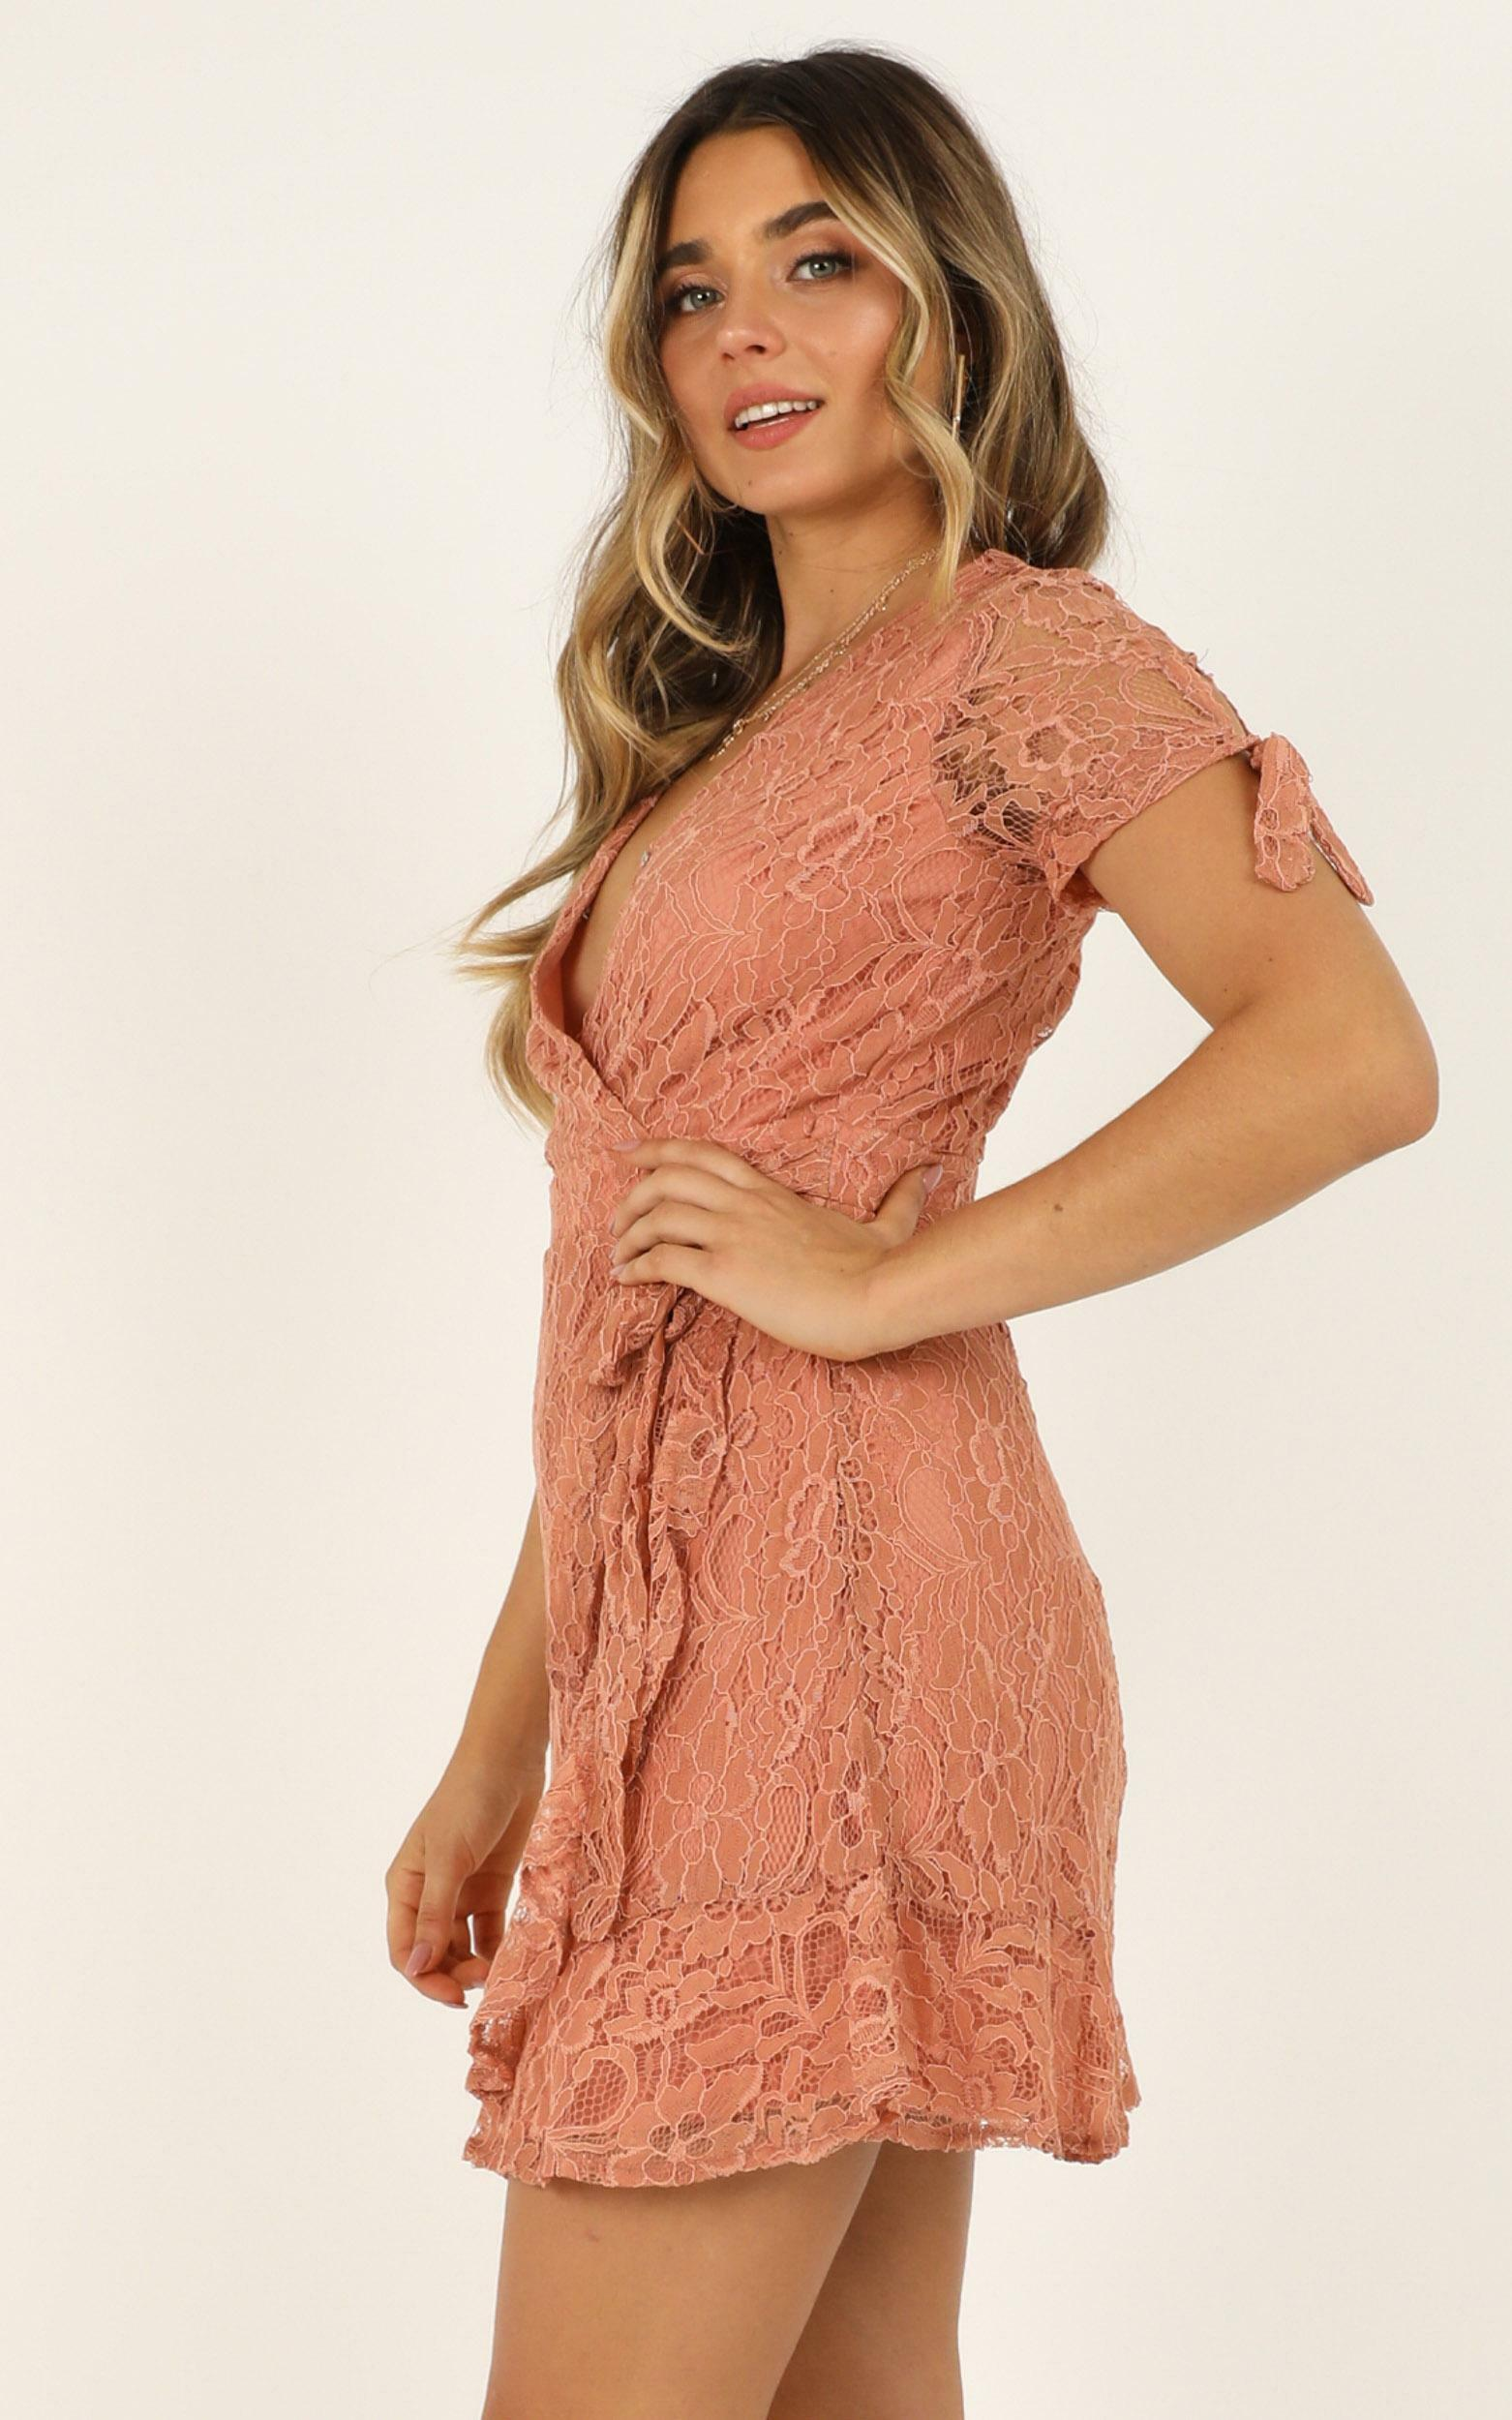 Sunset Lovers dress in mocha lace - 12 (L), Mocha, hi-res image number null